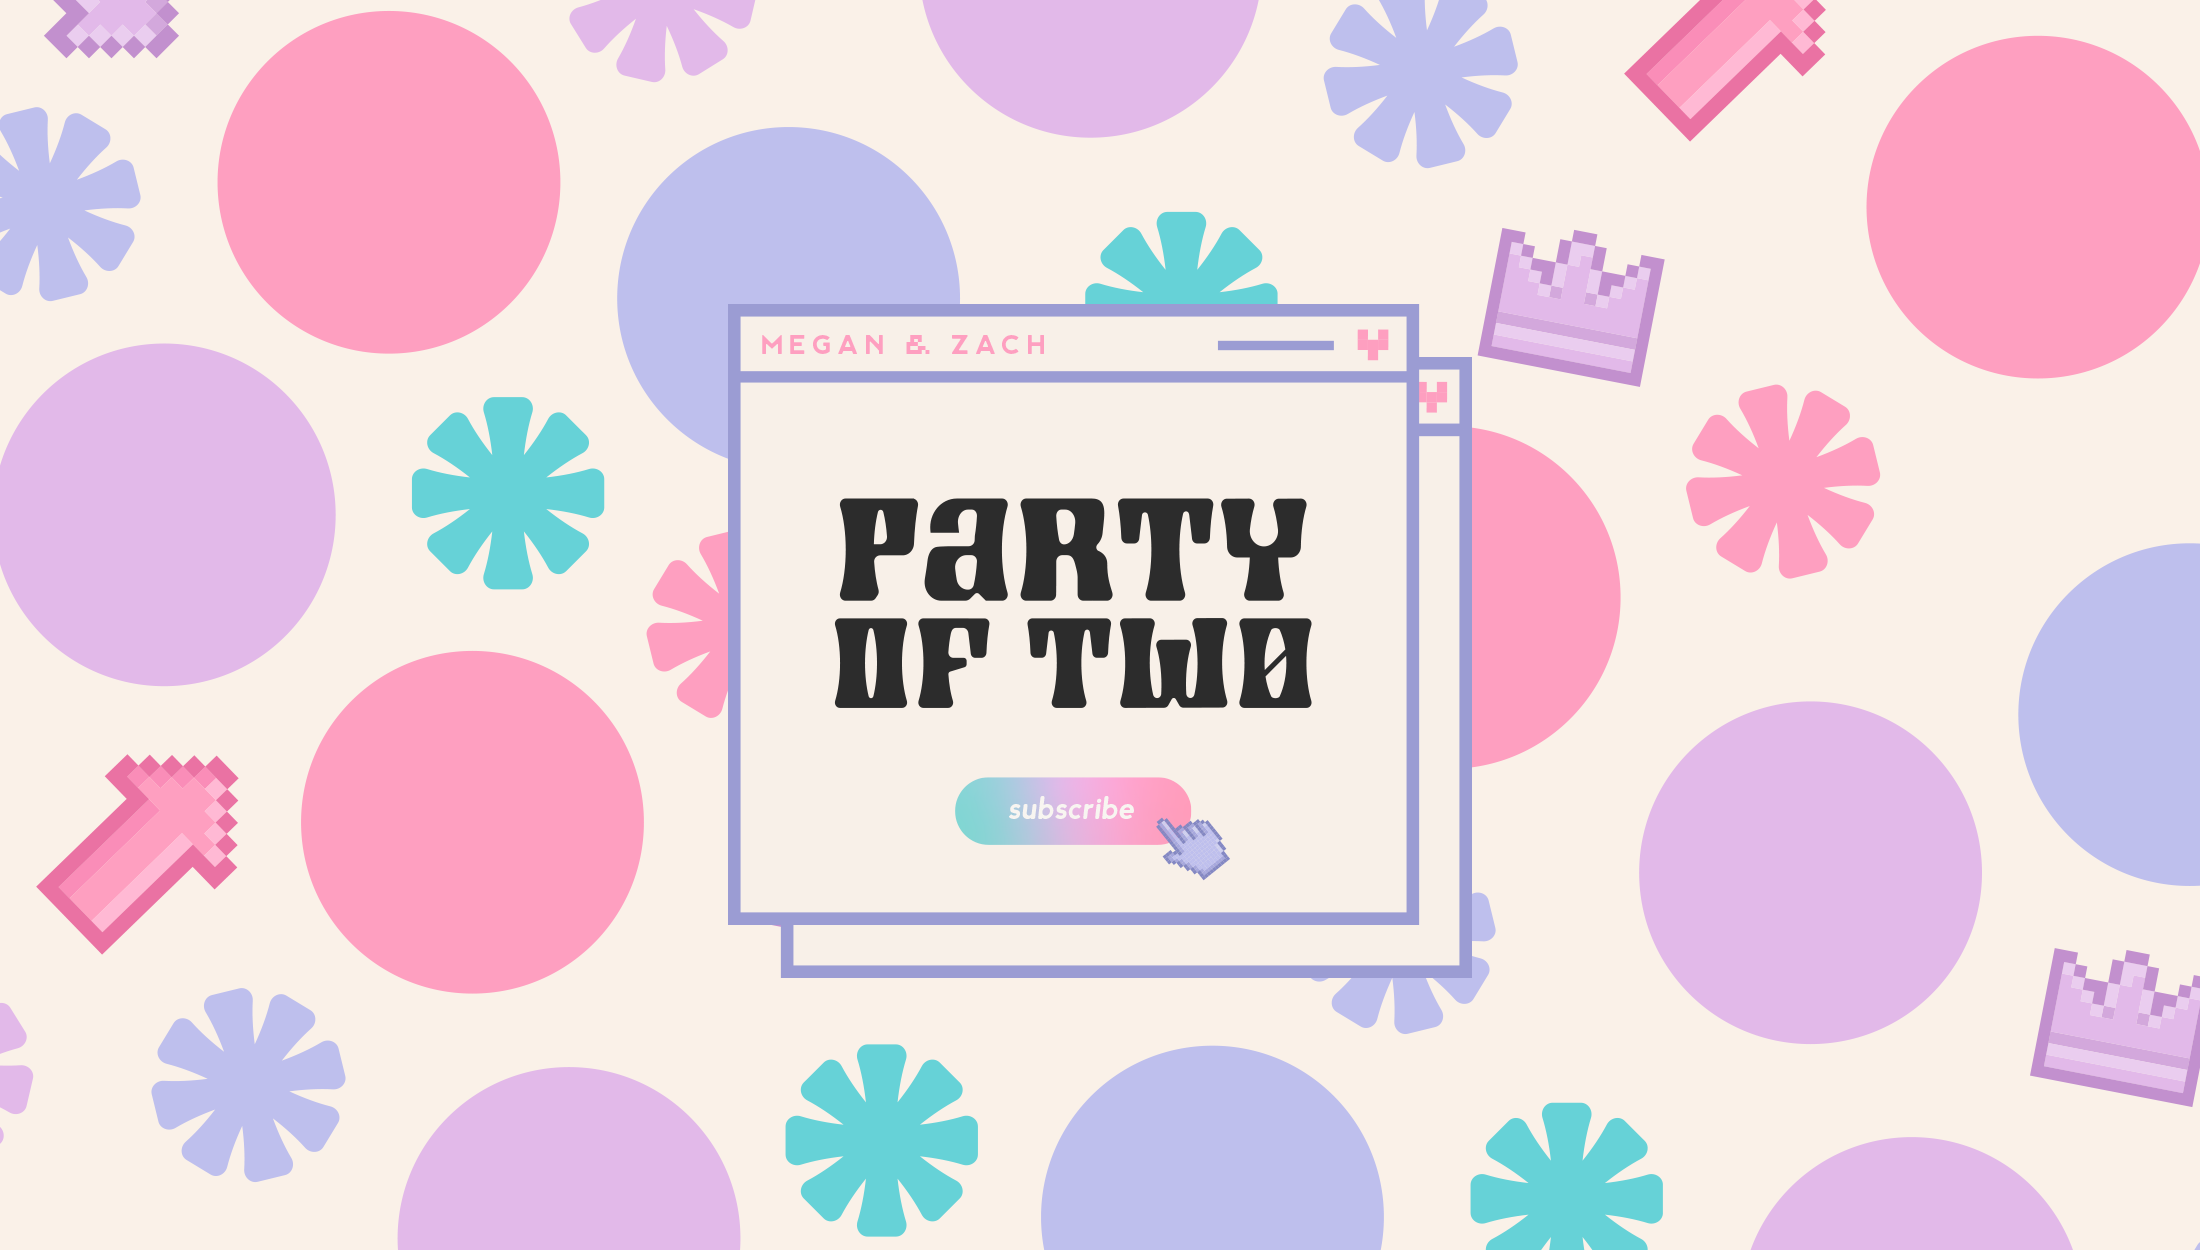 Logo design for Party of Two, Podcast by gaming couple Megan and Zach, discussing their lives, popular culture and social events - designed by Wiltshire-based graphic designer, Kaye Huett